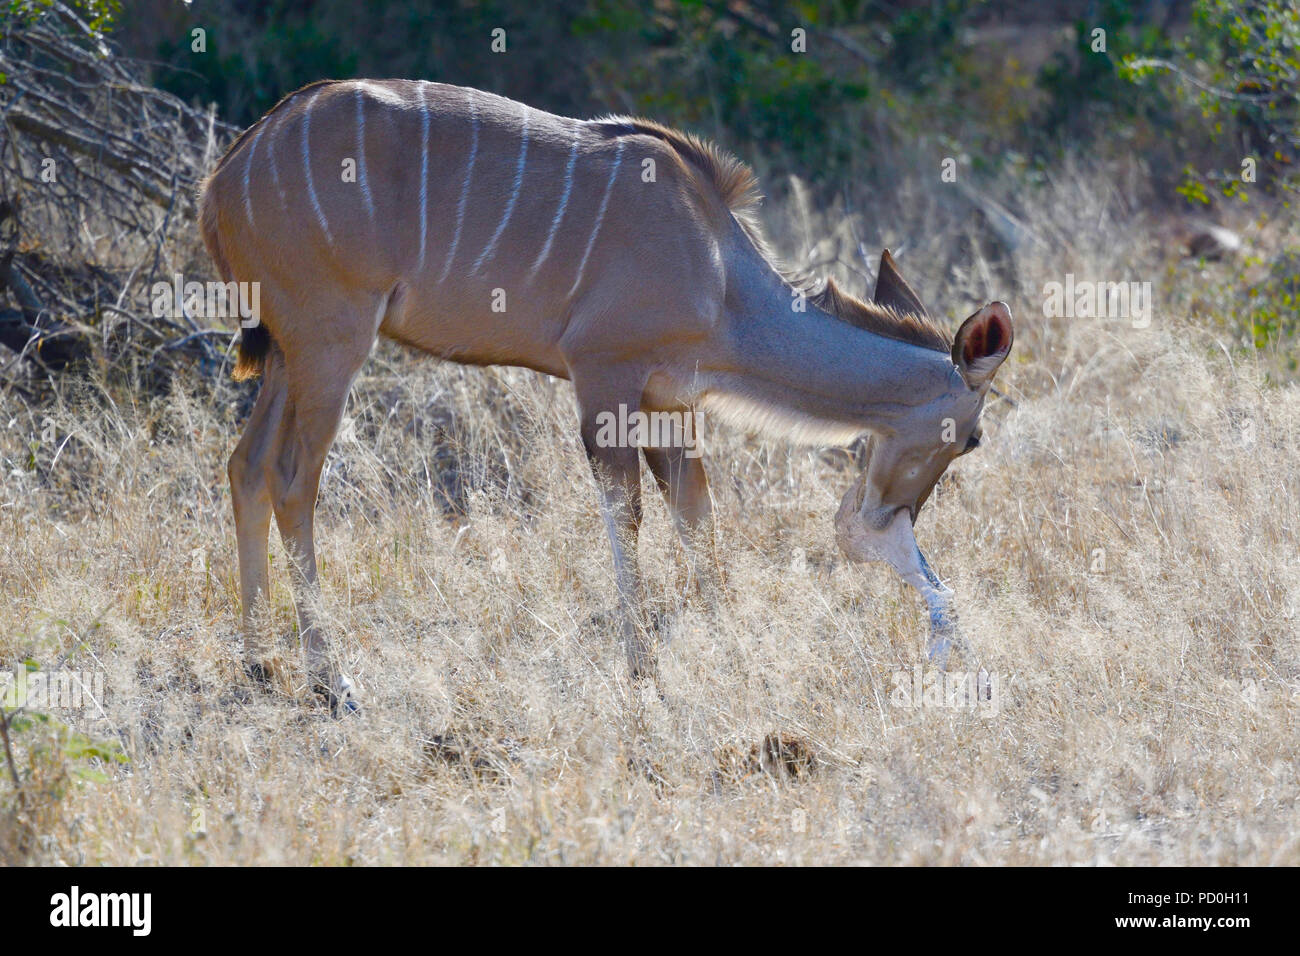 South Africa, a fantastic travel destination to experience third and first world together. Kuducow eating/chewing bones in Kruger Park. - Stock Image